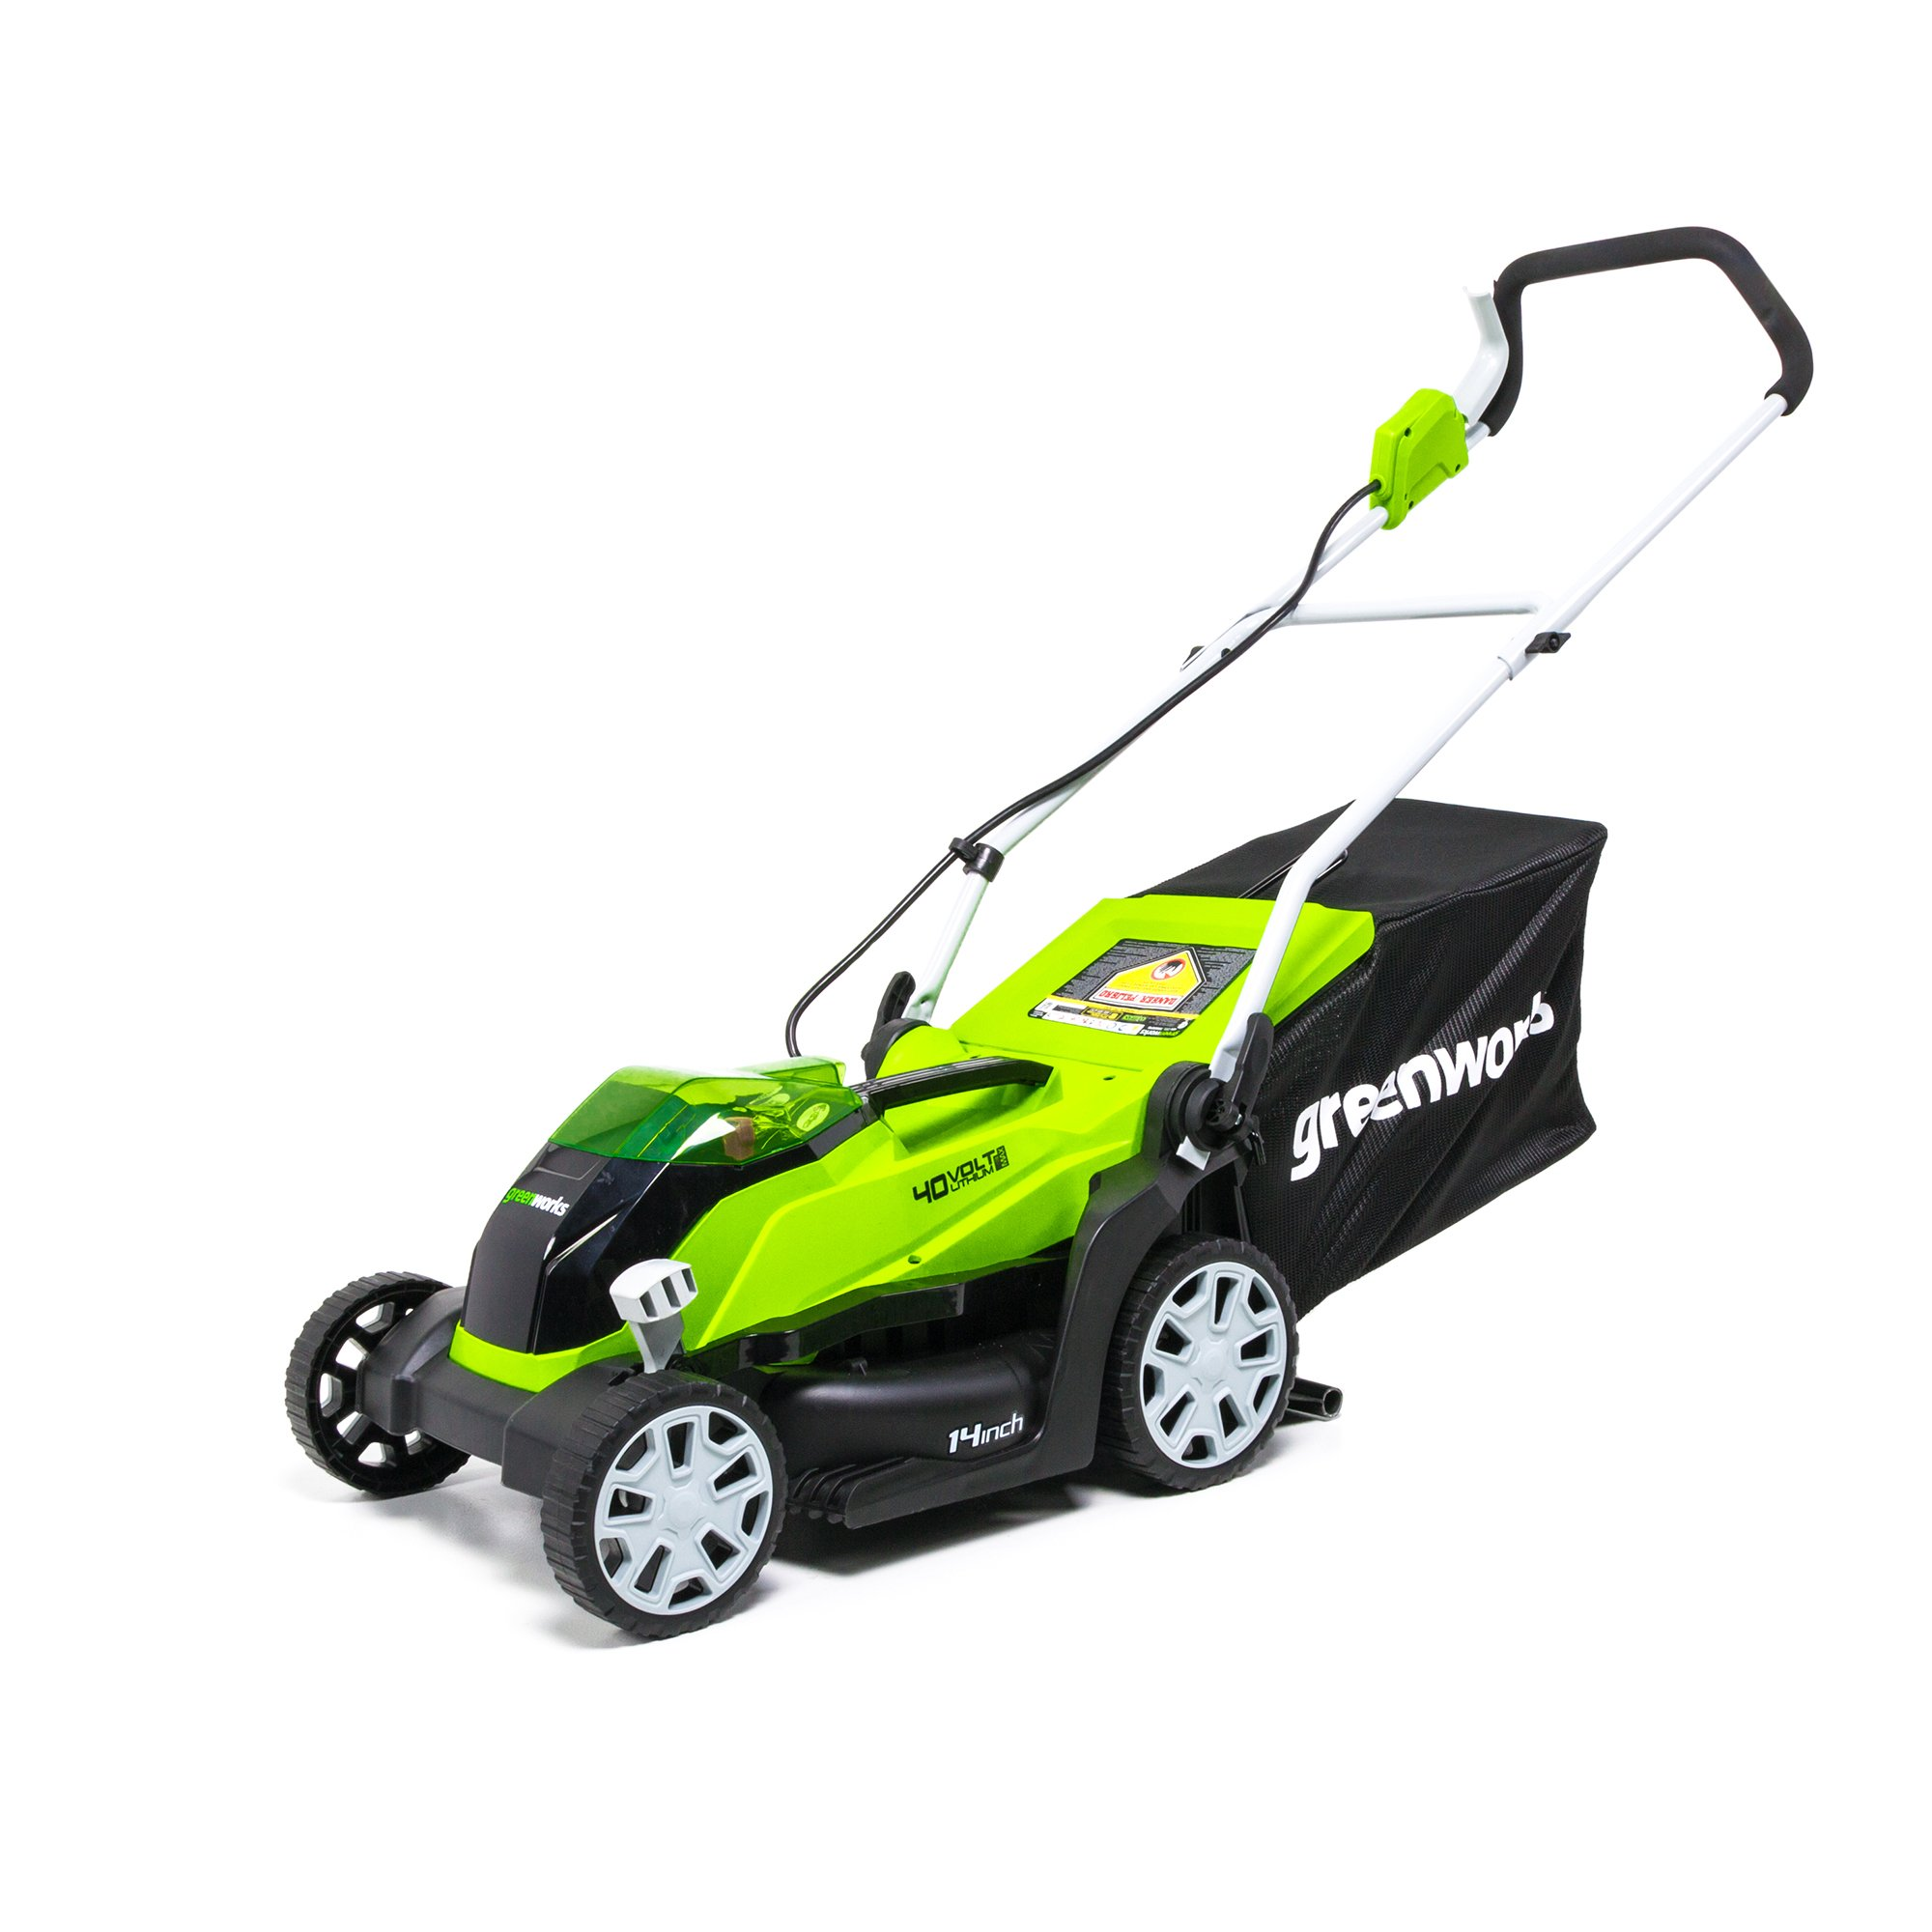 Greenworks 14-Inch 40V Cordless Lawn Mower, Battery Not Included MO40B00 by Greenworks